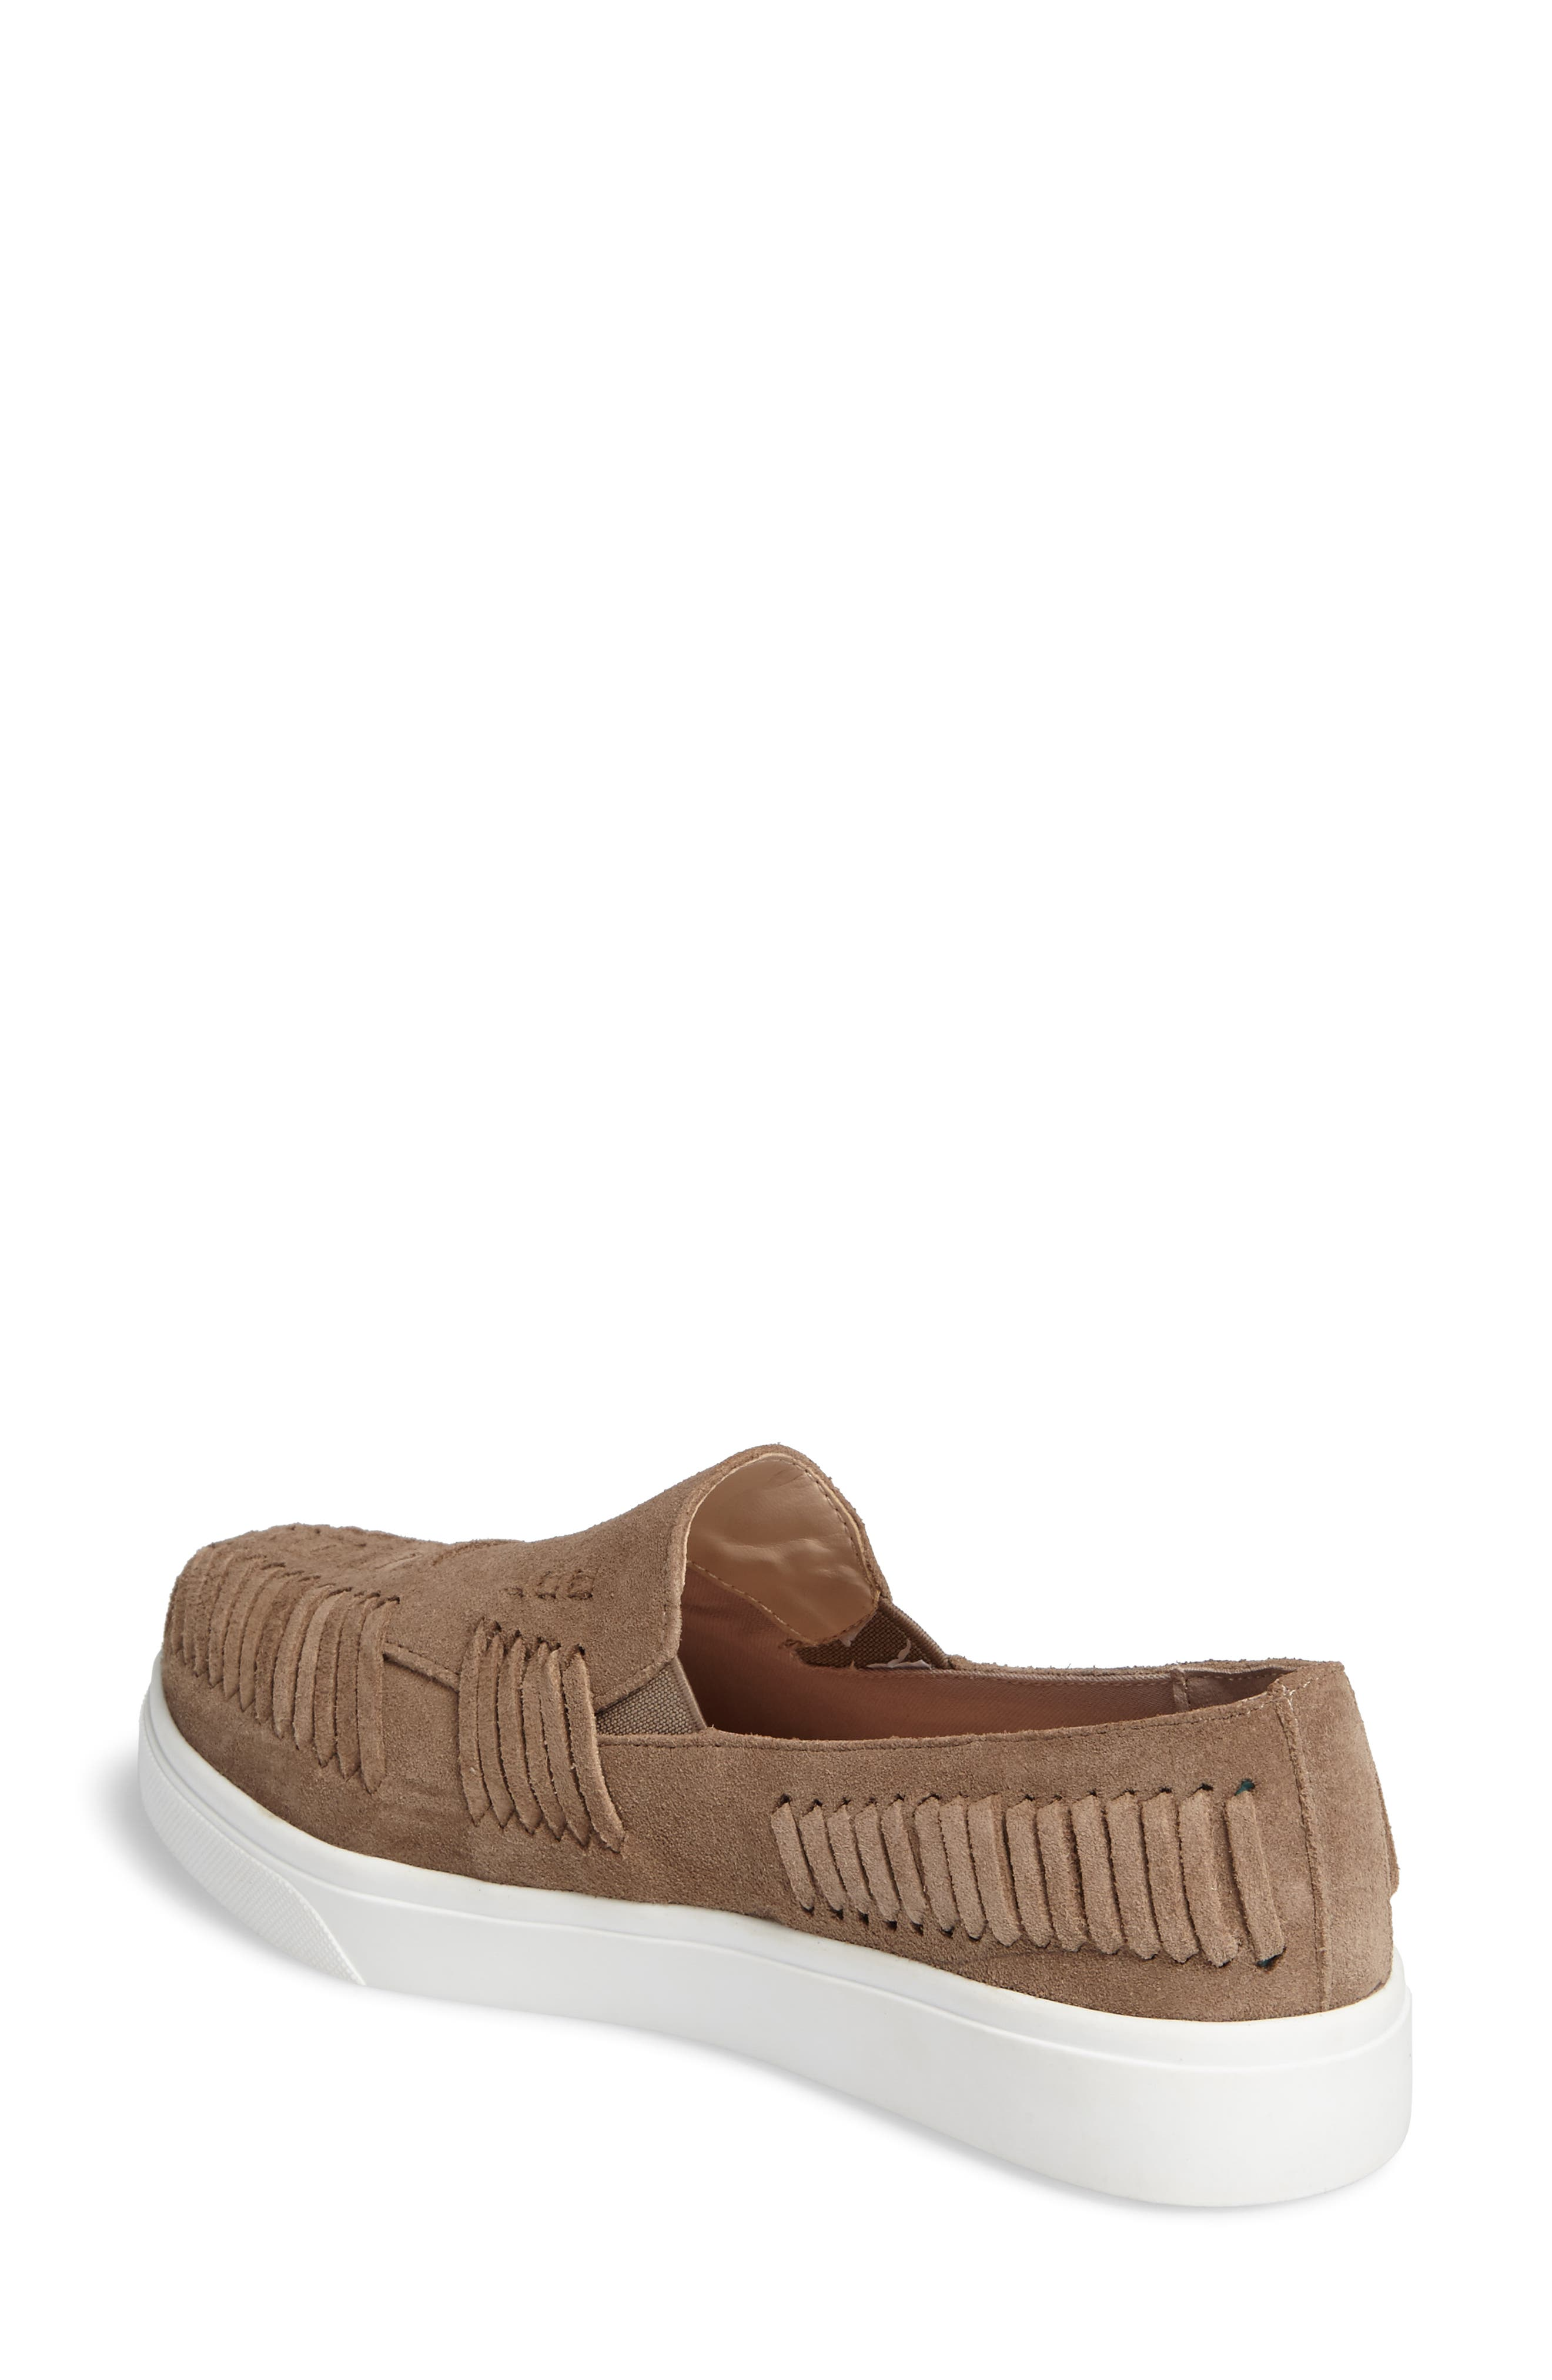 Rocco Woven Slip-On Sneaker,                             Alternate thumbnail 2, color,                             Taupe Suede